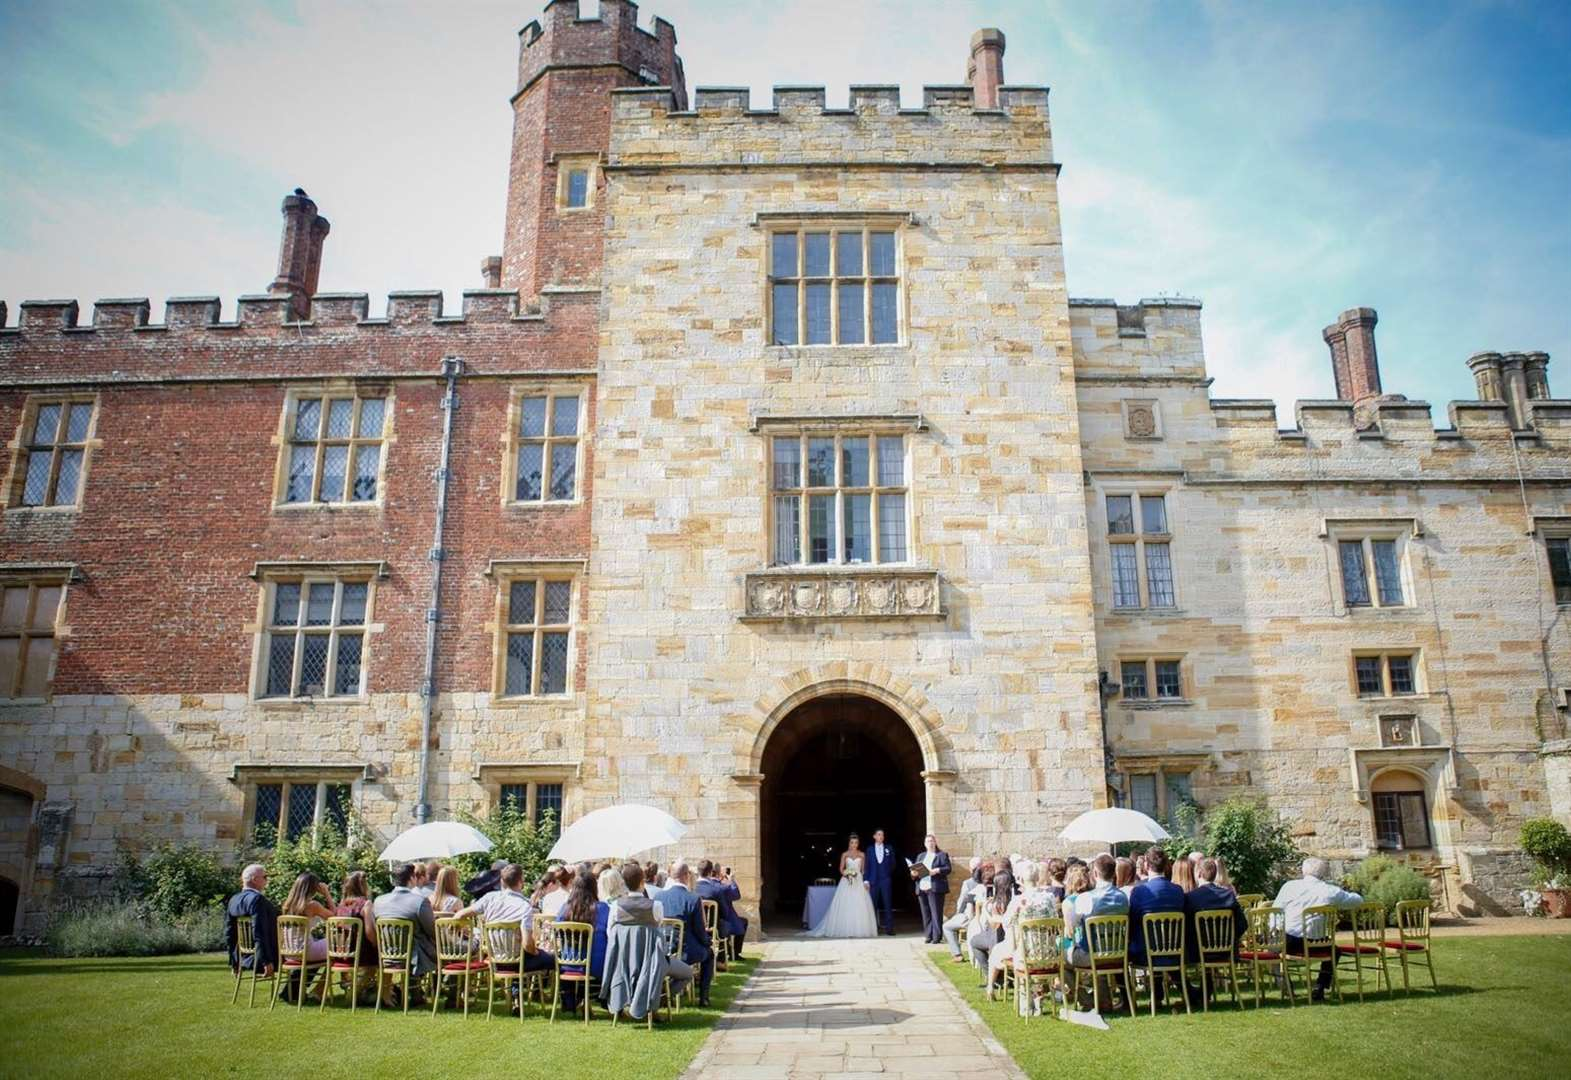 A stately home reopening fit for a king